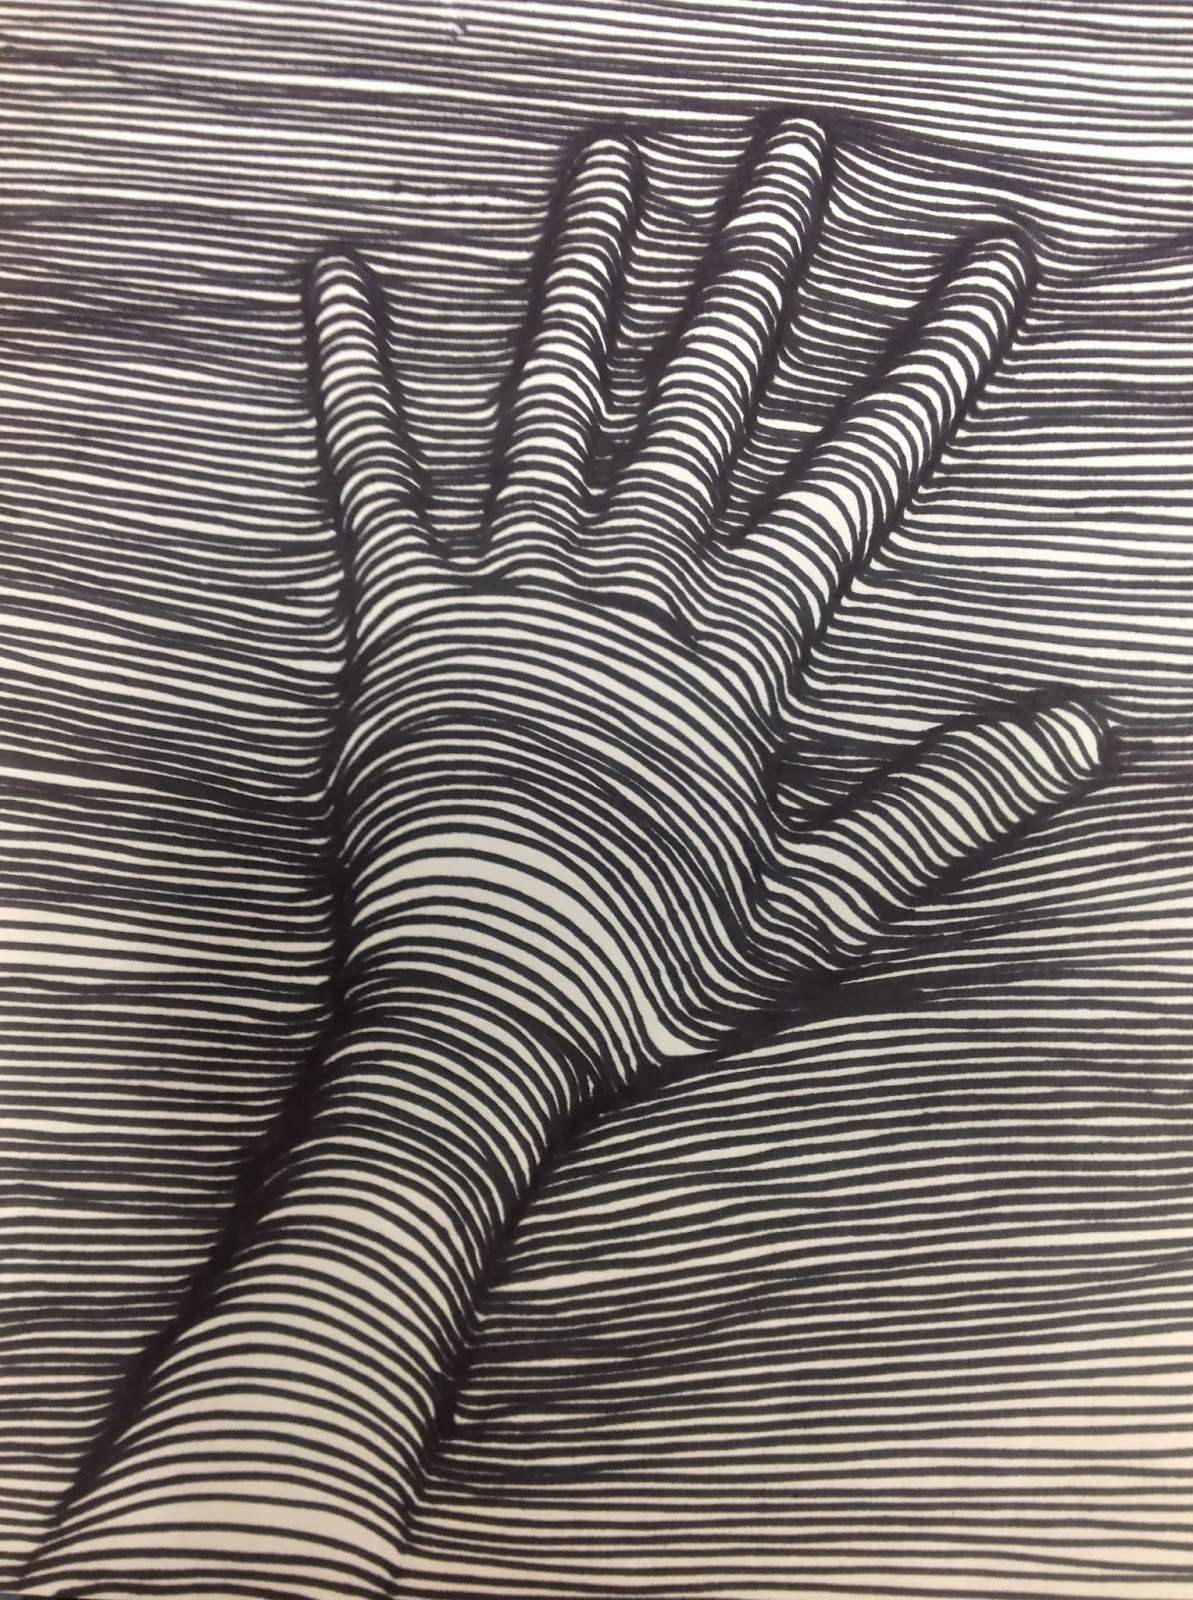 Line With Design : Miss arty pants contour line drawings